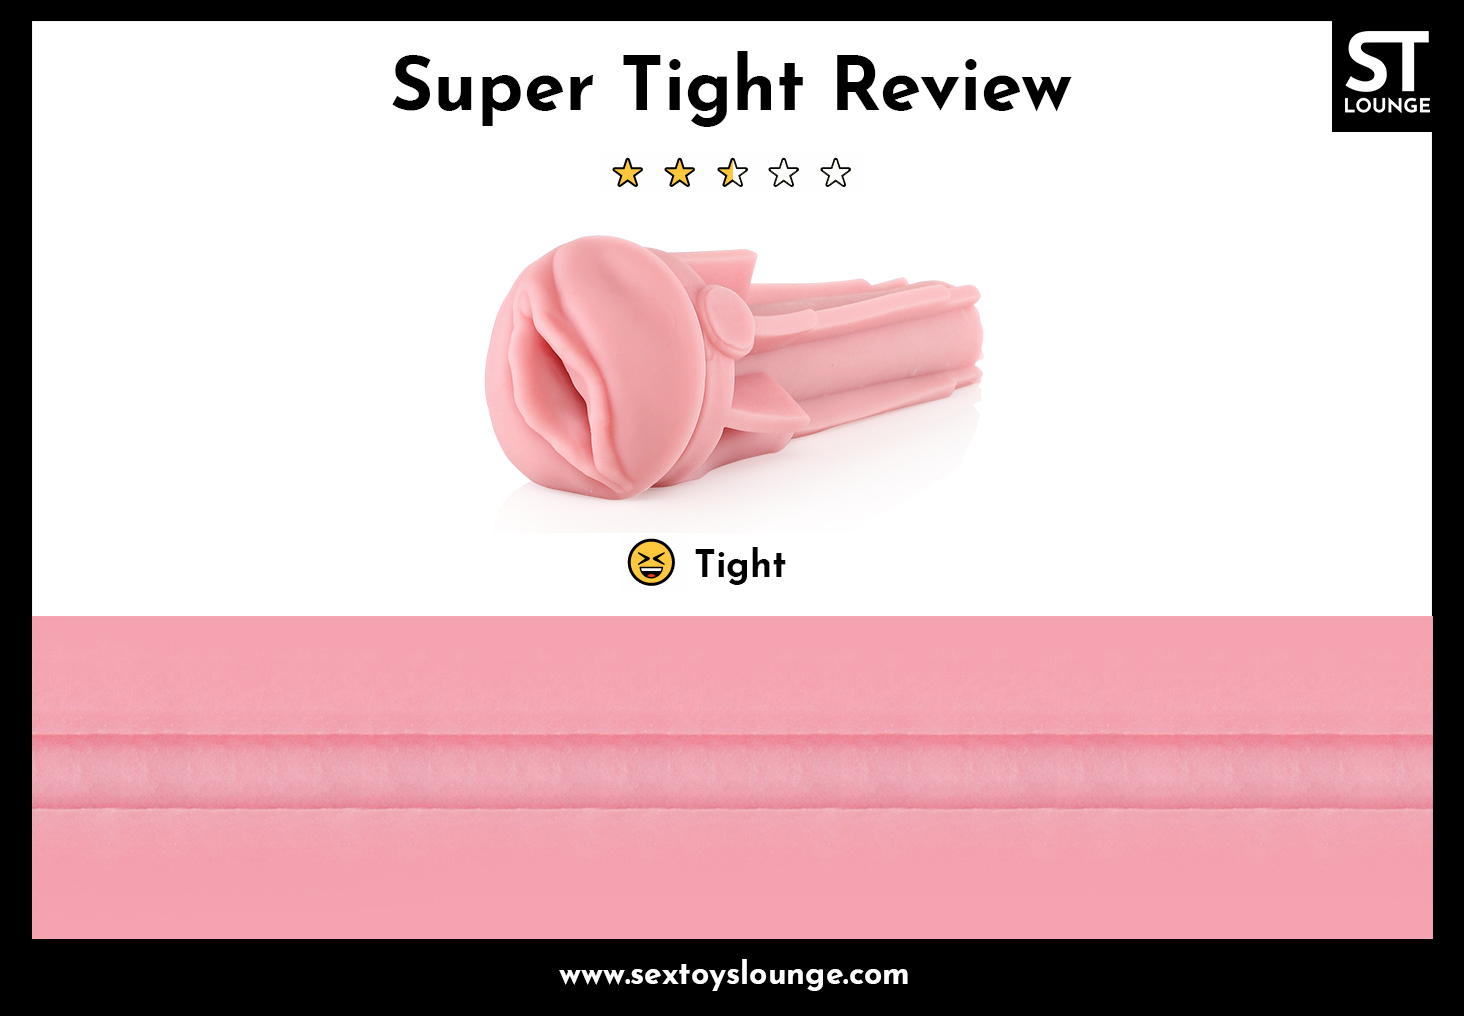 fleshlight-super-tight-review